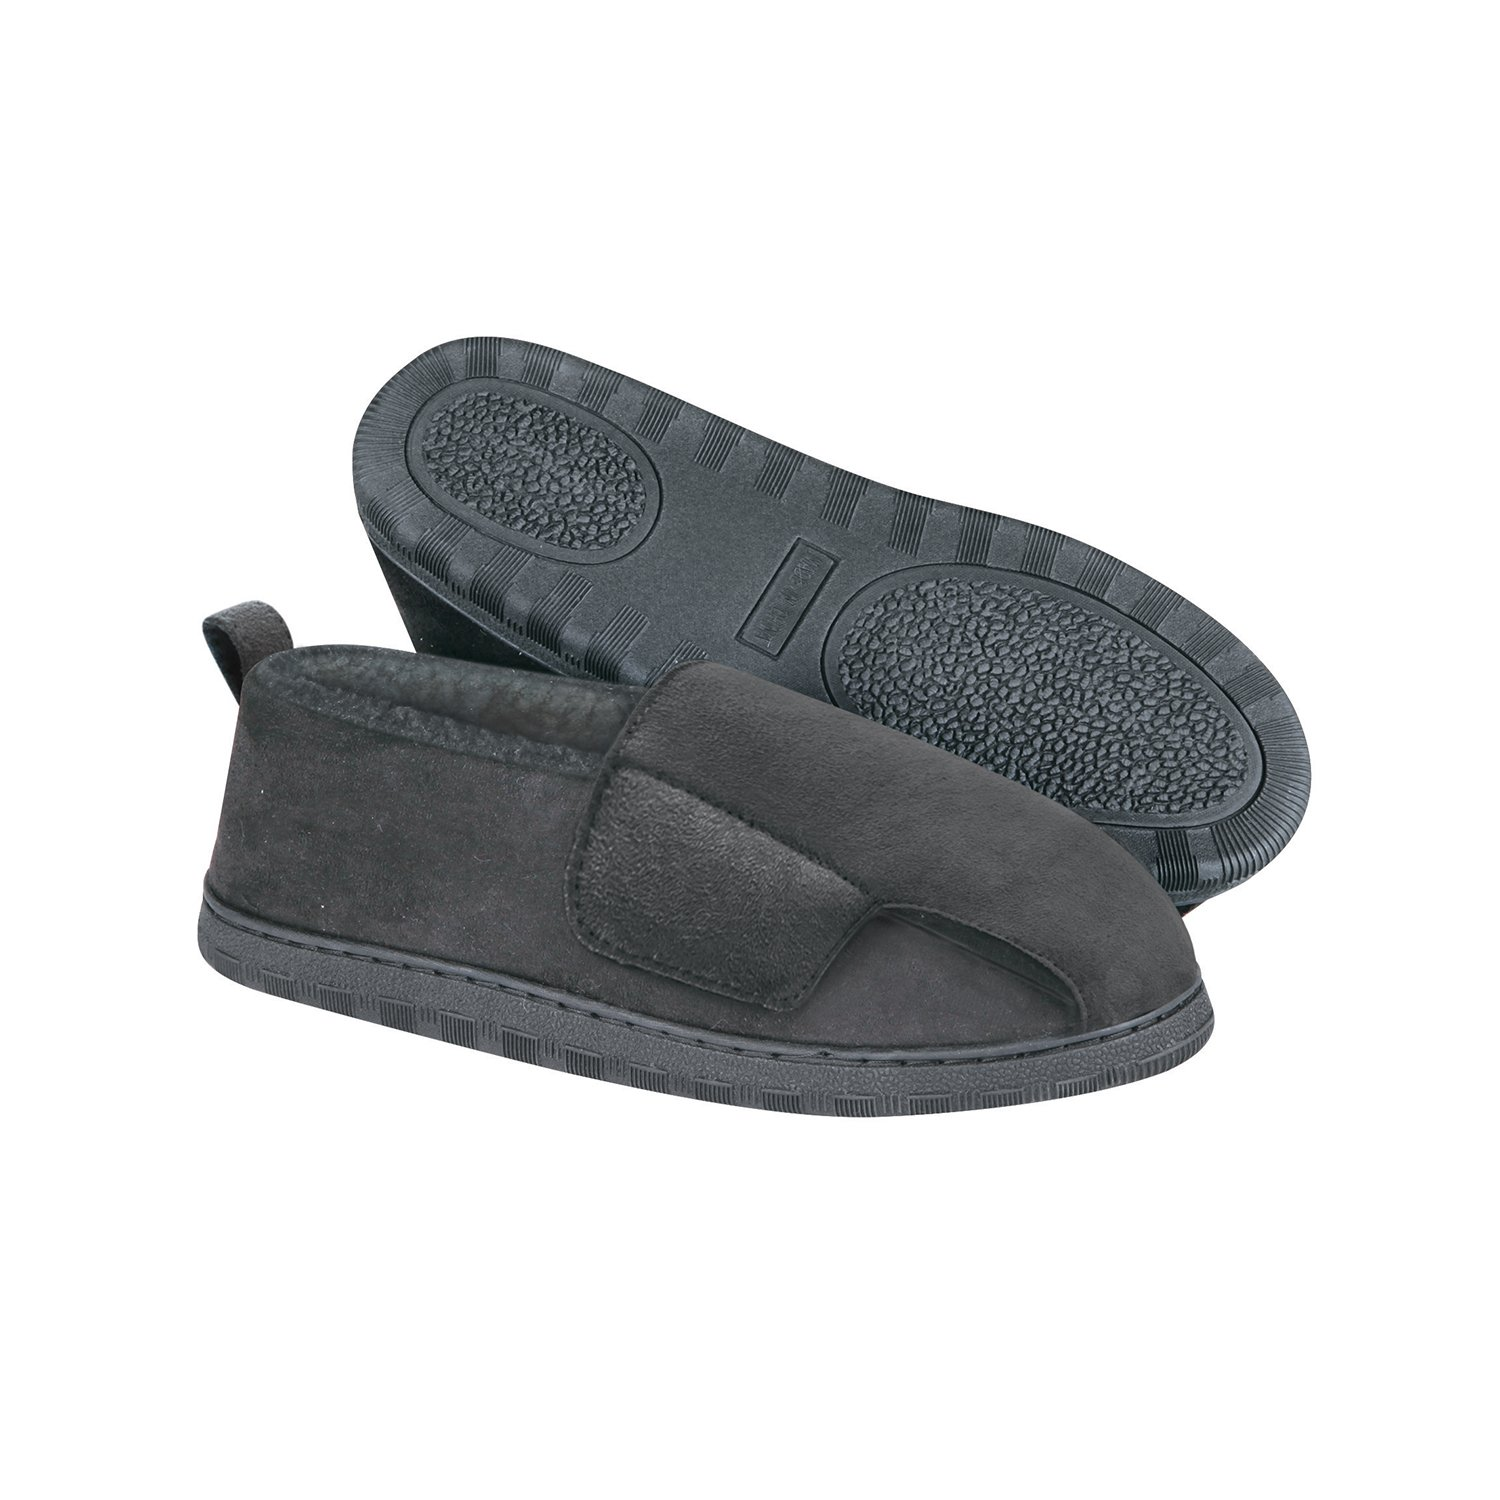 Mens Adjustable Shoes For Swollen Feet